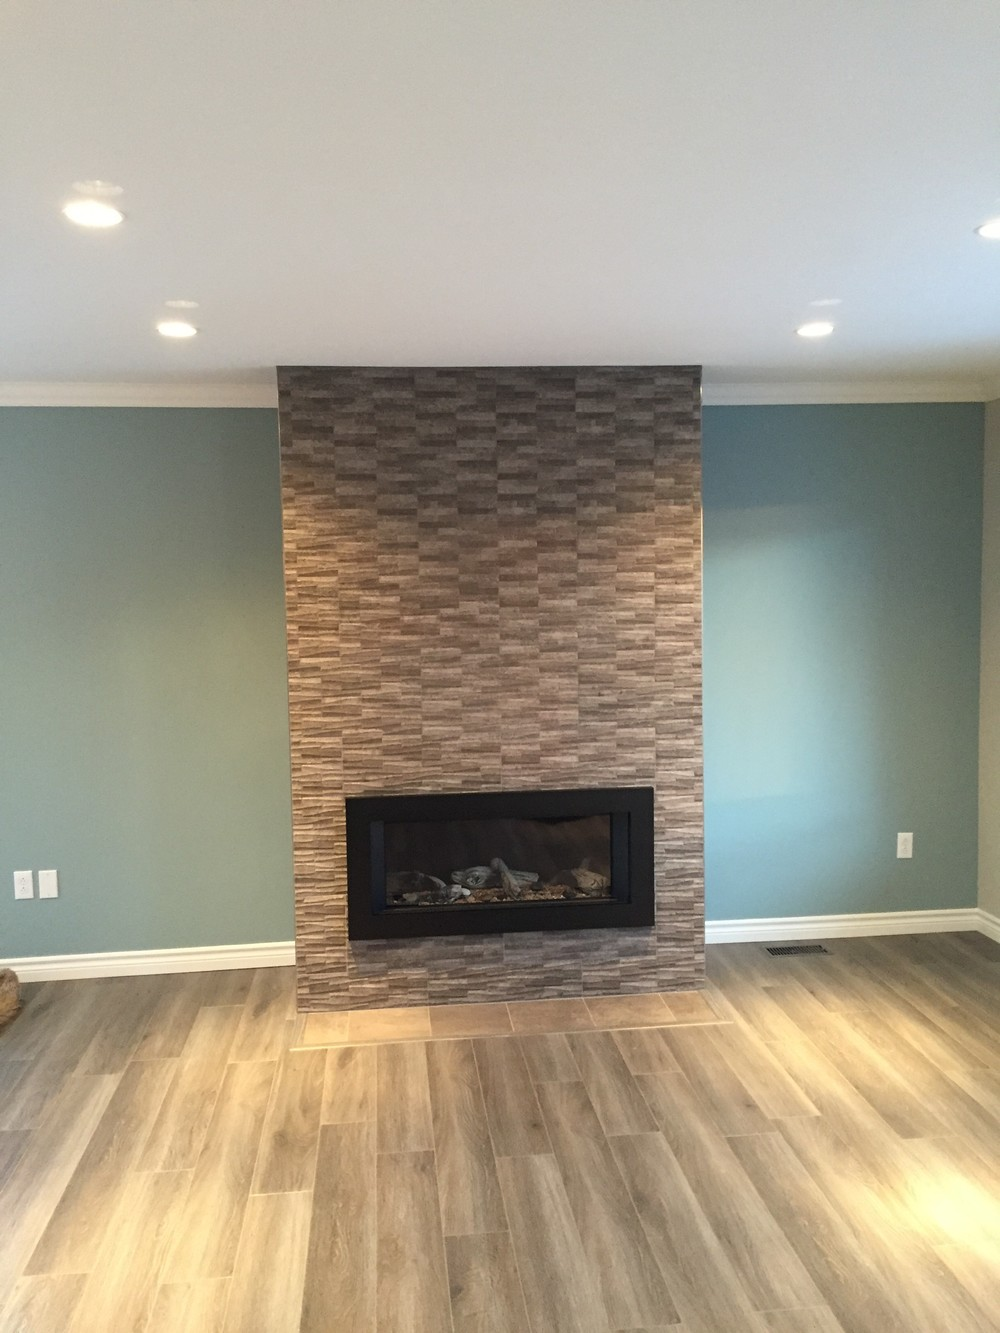 New custom propane tile fireplace is a beautiful focal point.